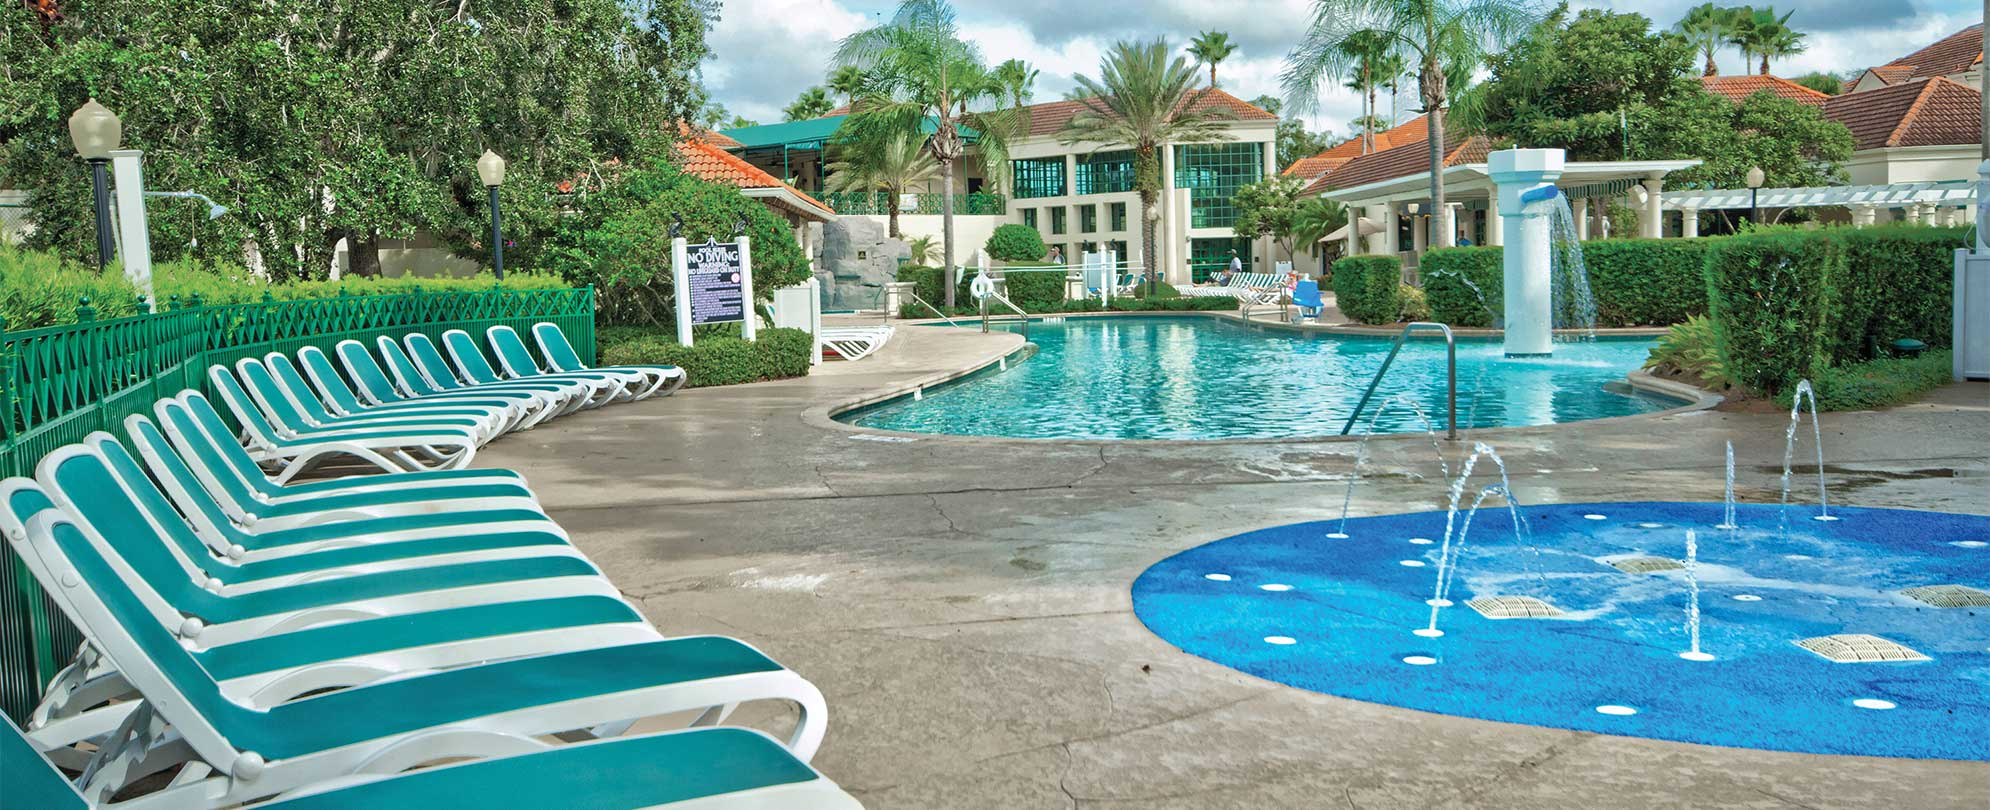 Wyndham Island Orlando Resort Star